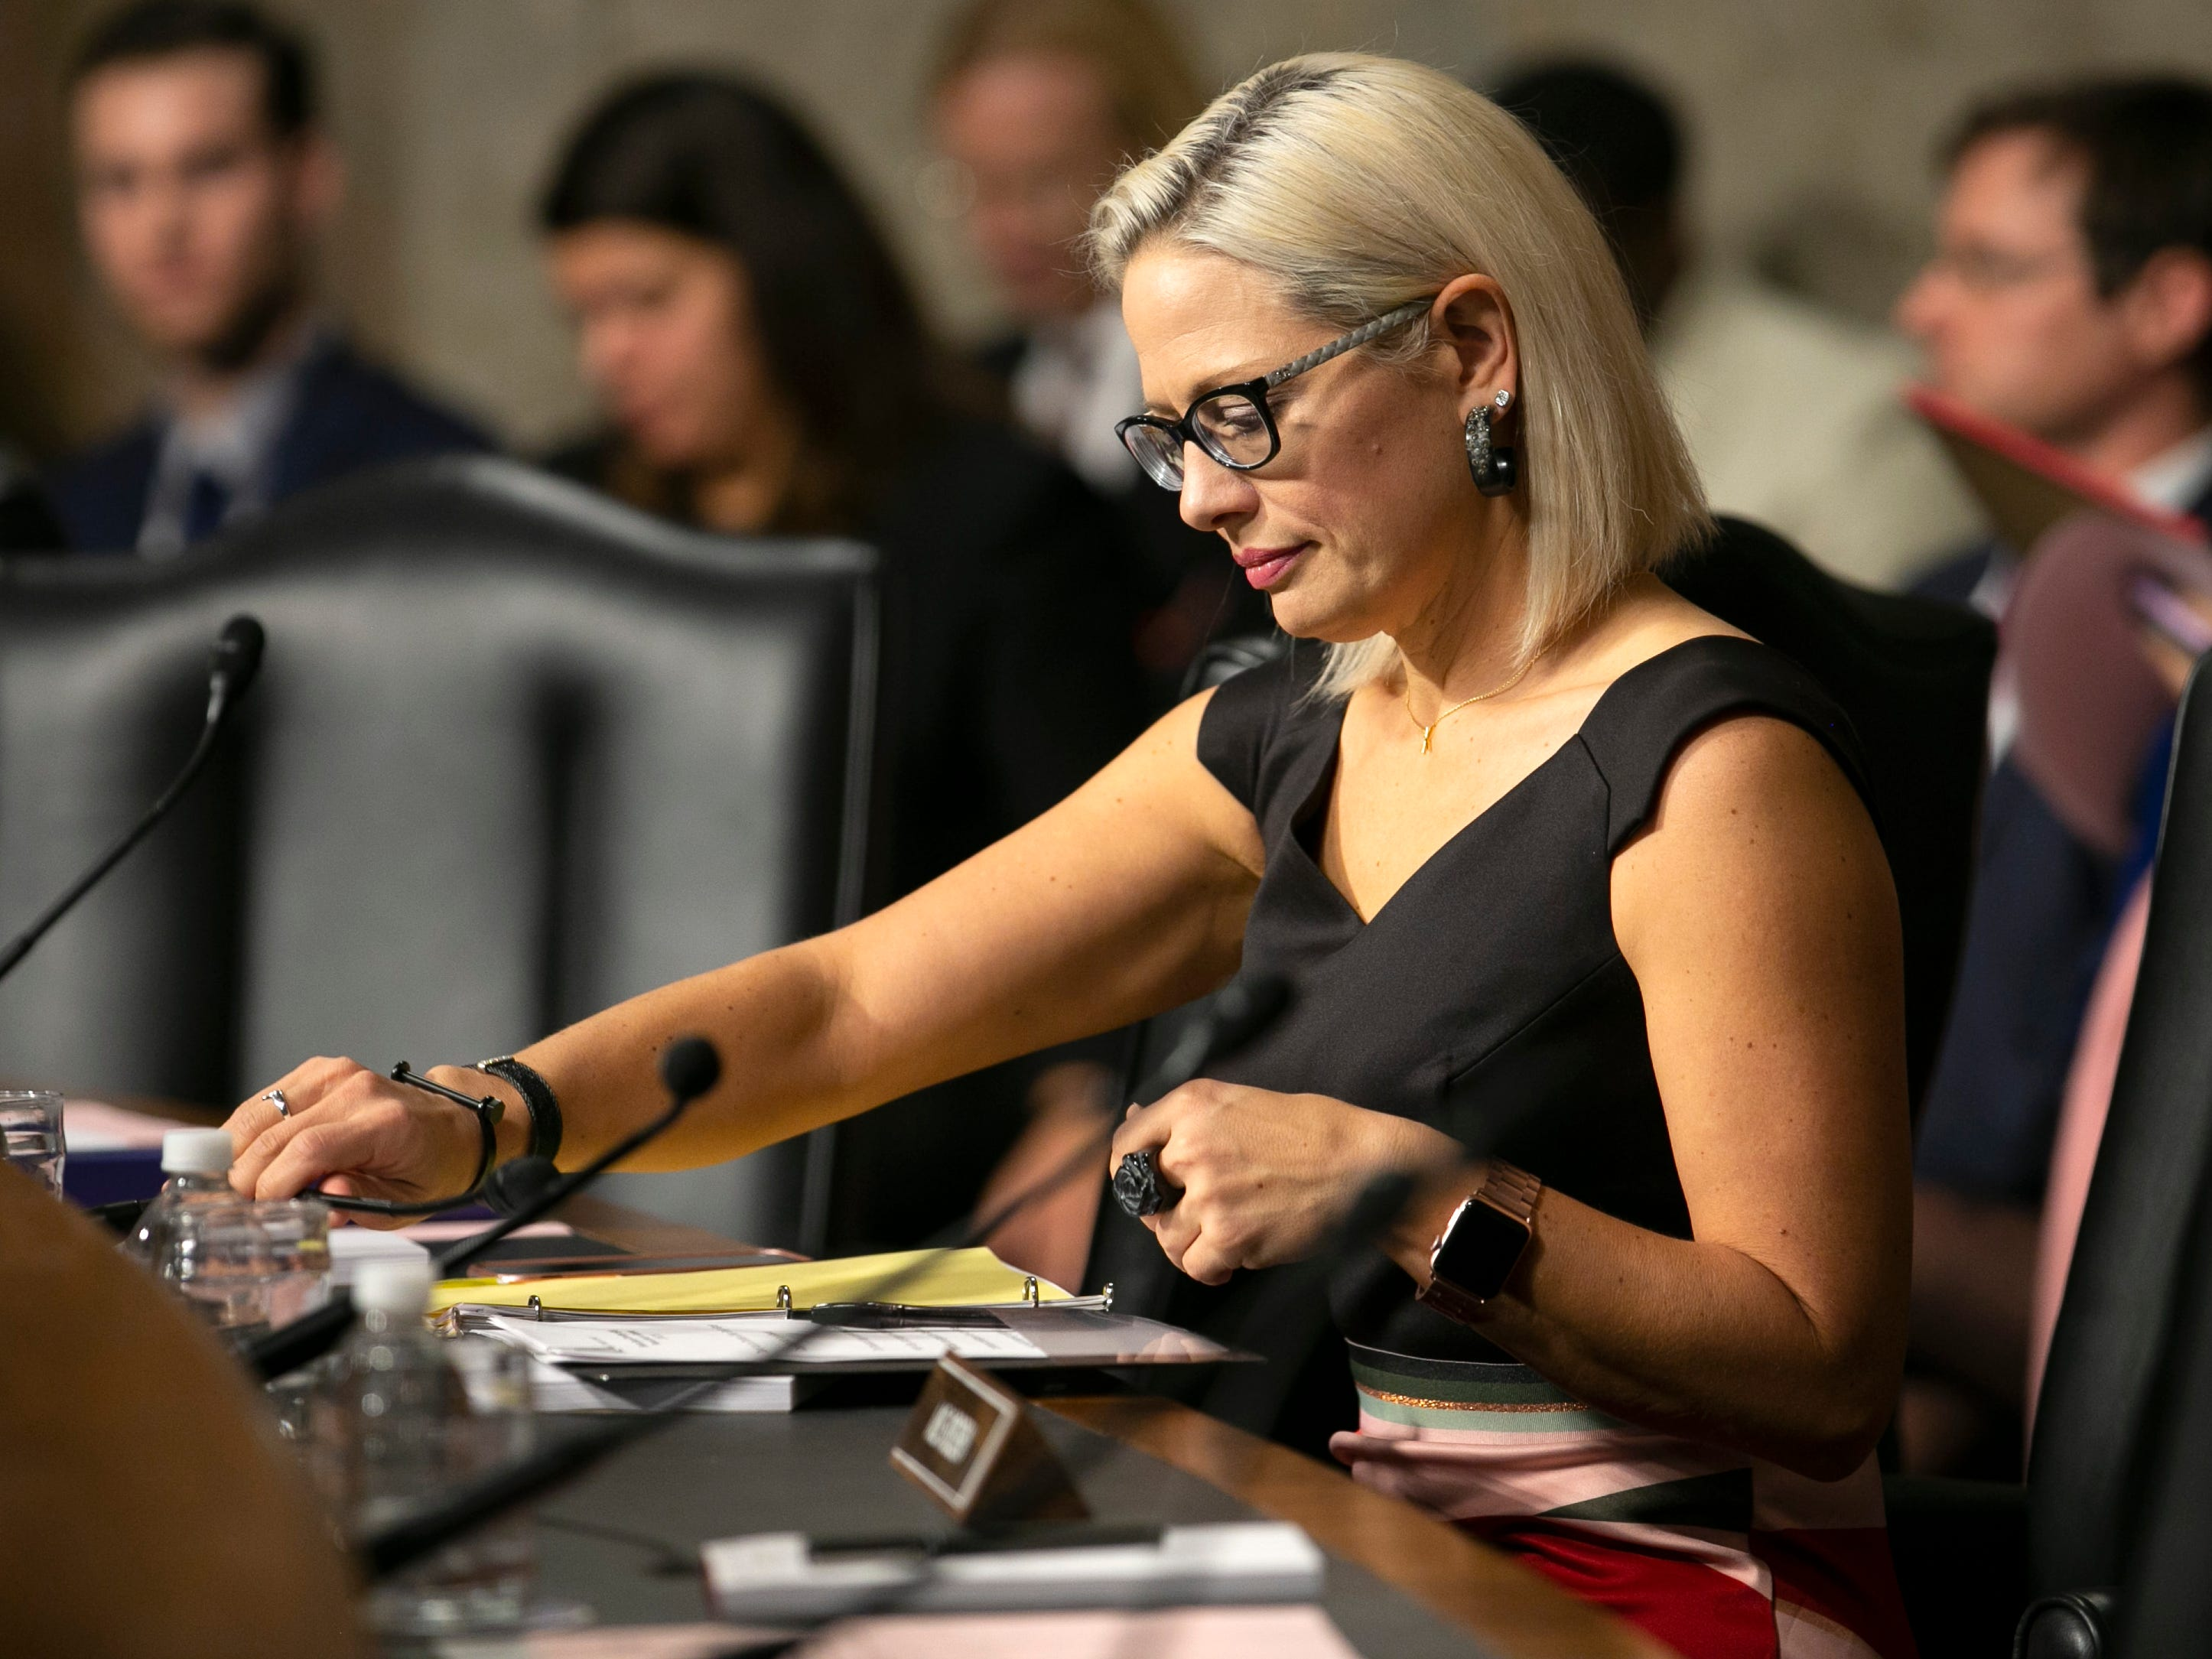 U.S. Sen. Kyrsten Sinema, D.-Ariz., listens during the U.S. Senate Committee on Commerce, Science and Transportation at the U.S. Capitol in Washington D.C. on Feb. 6, 2019.